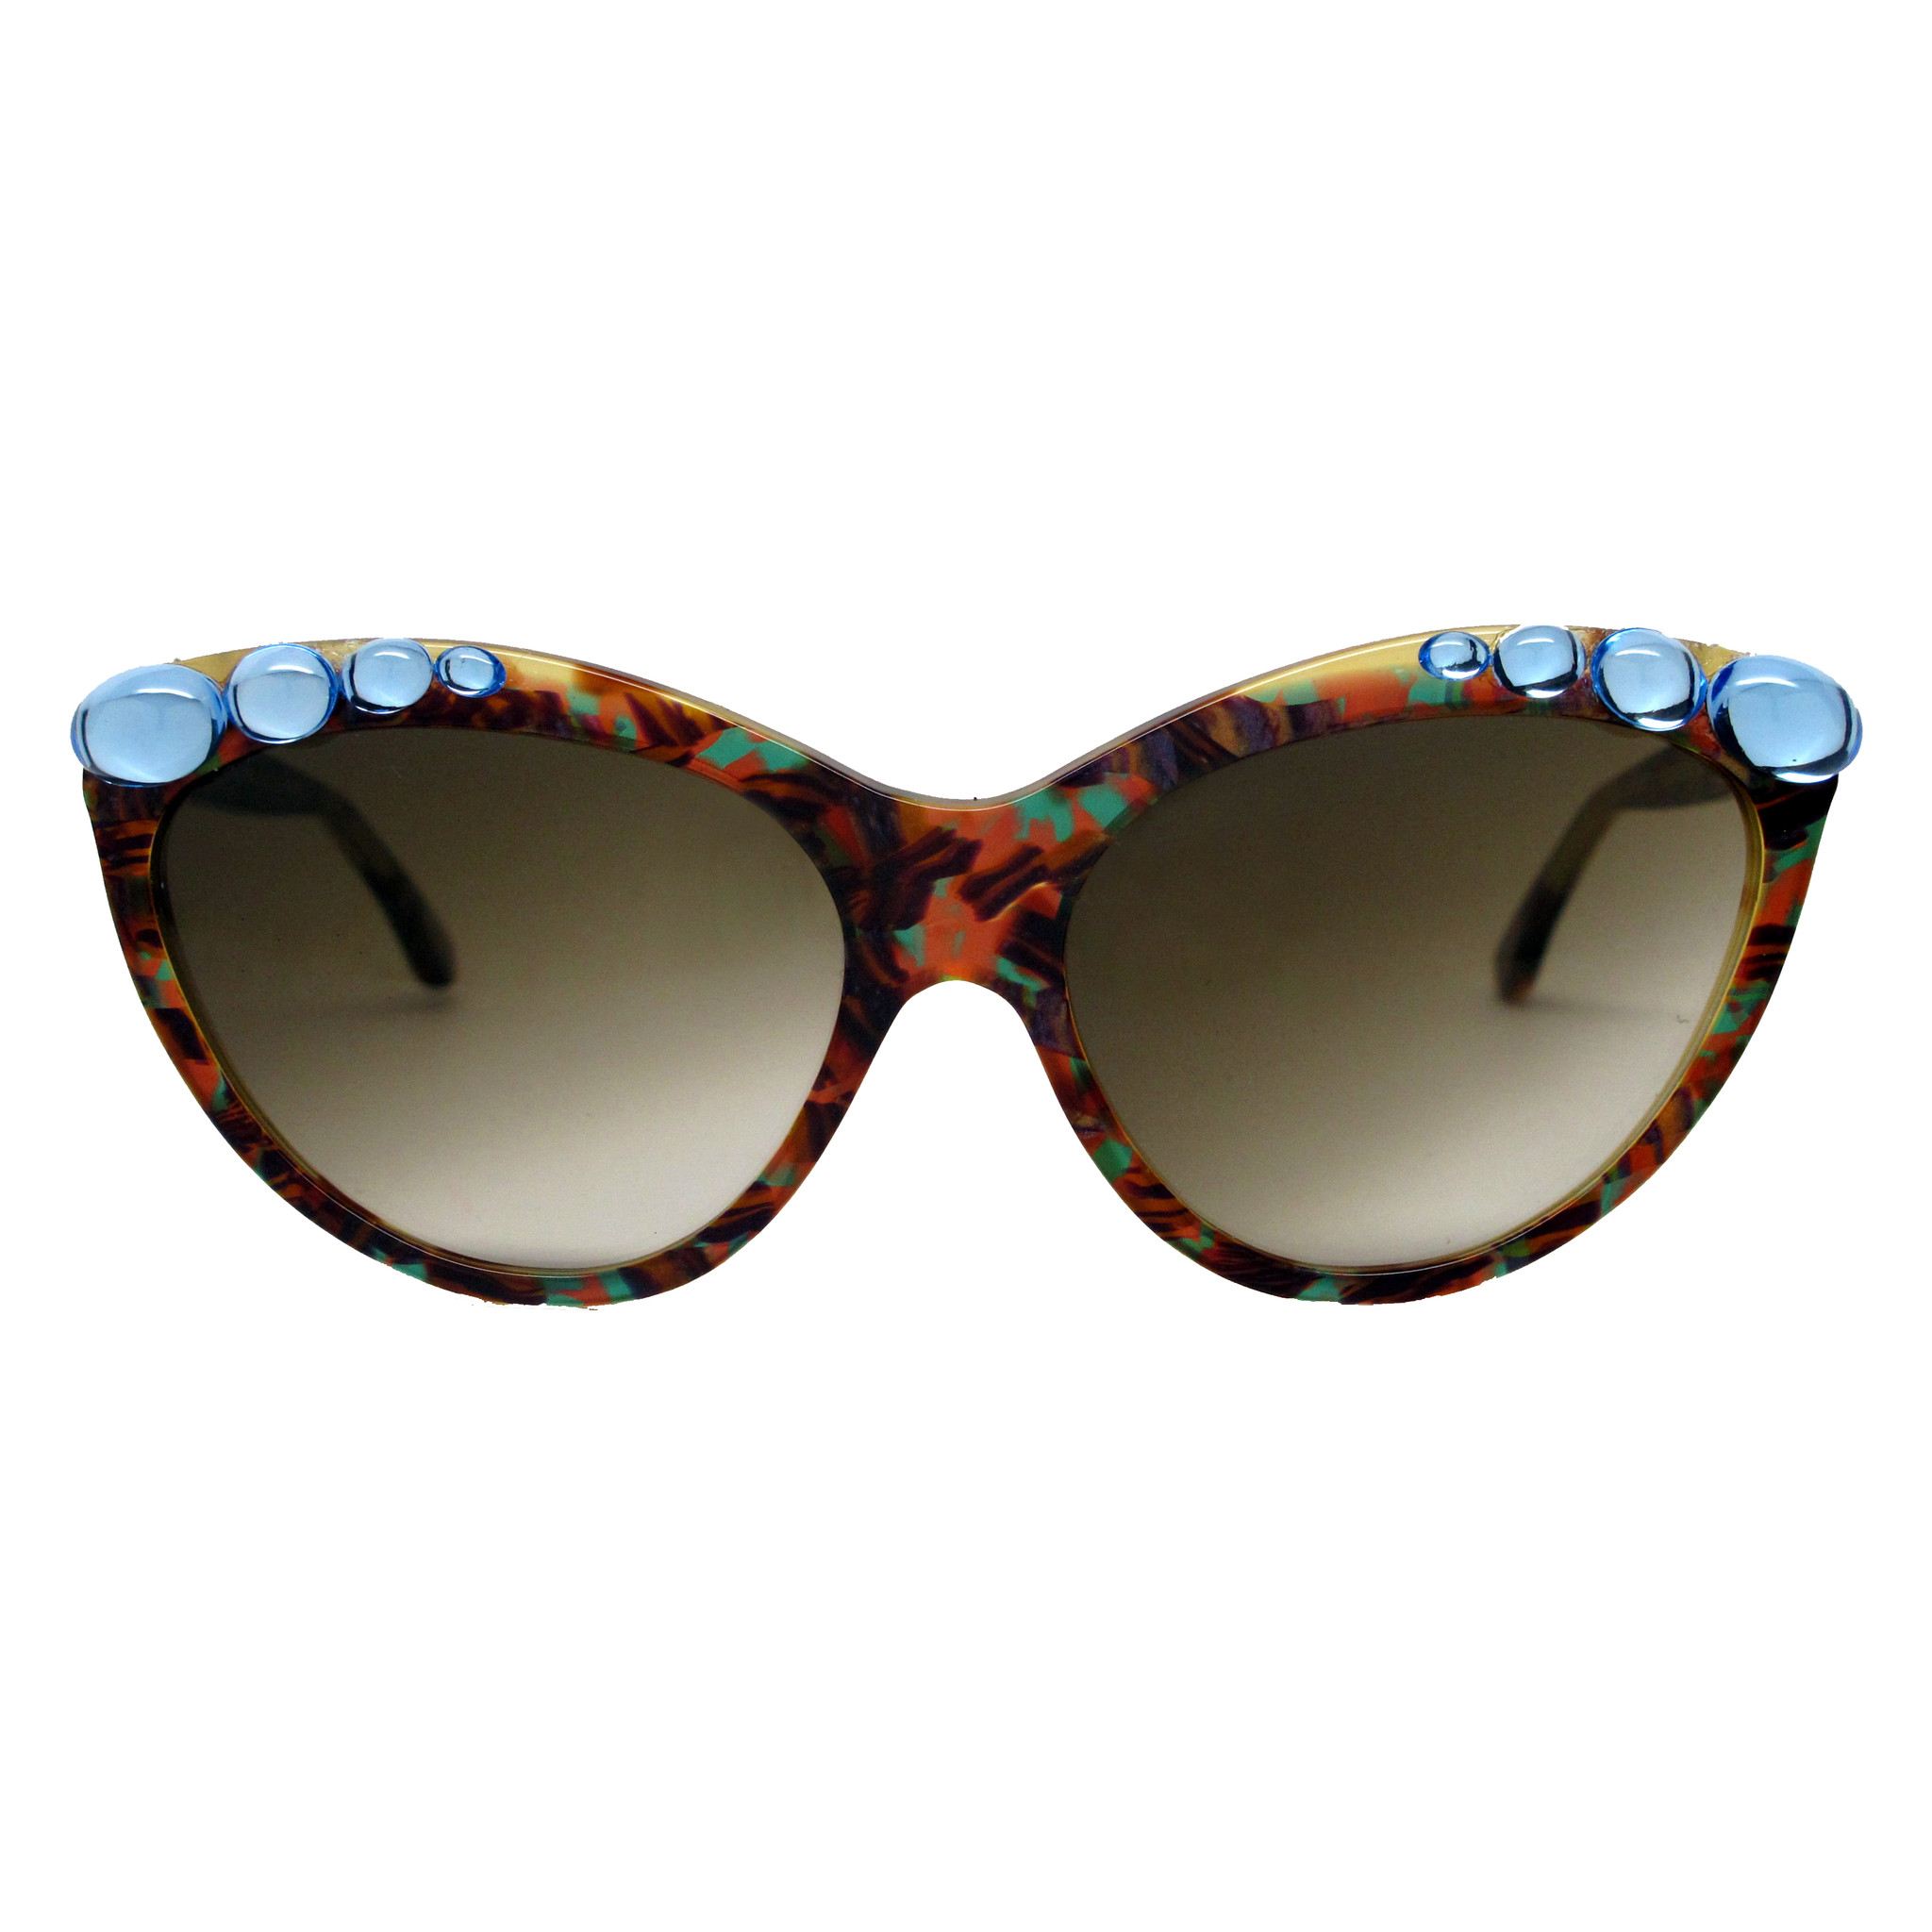 07-SHELLY-BLUE-TORTOISE-120-MINUTES-A-MORIR-SS2015.jpg?fit=2048%2C2048